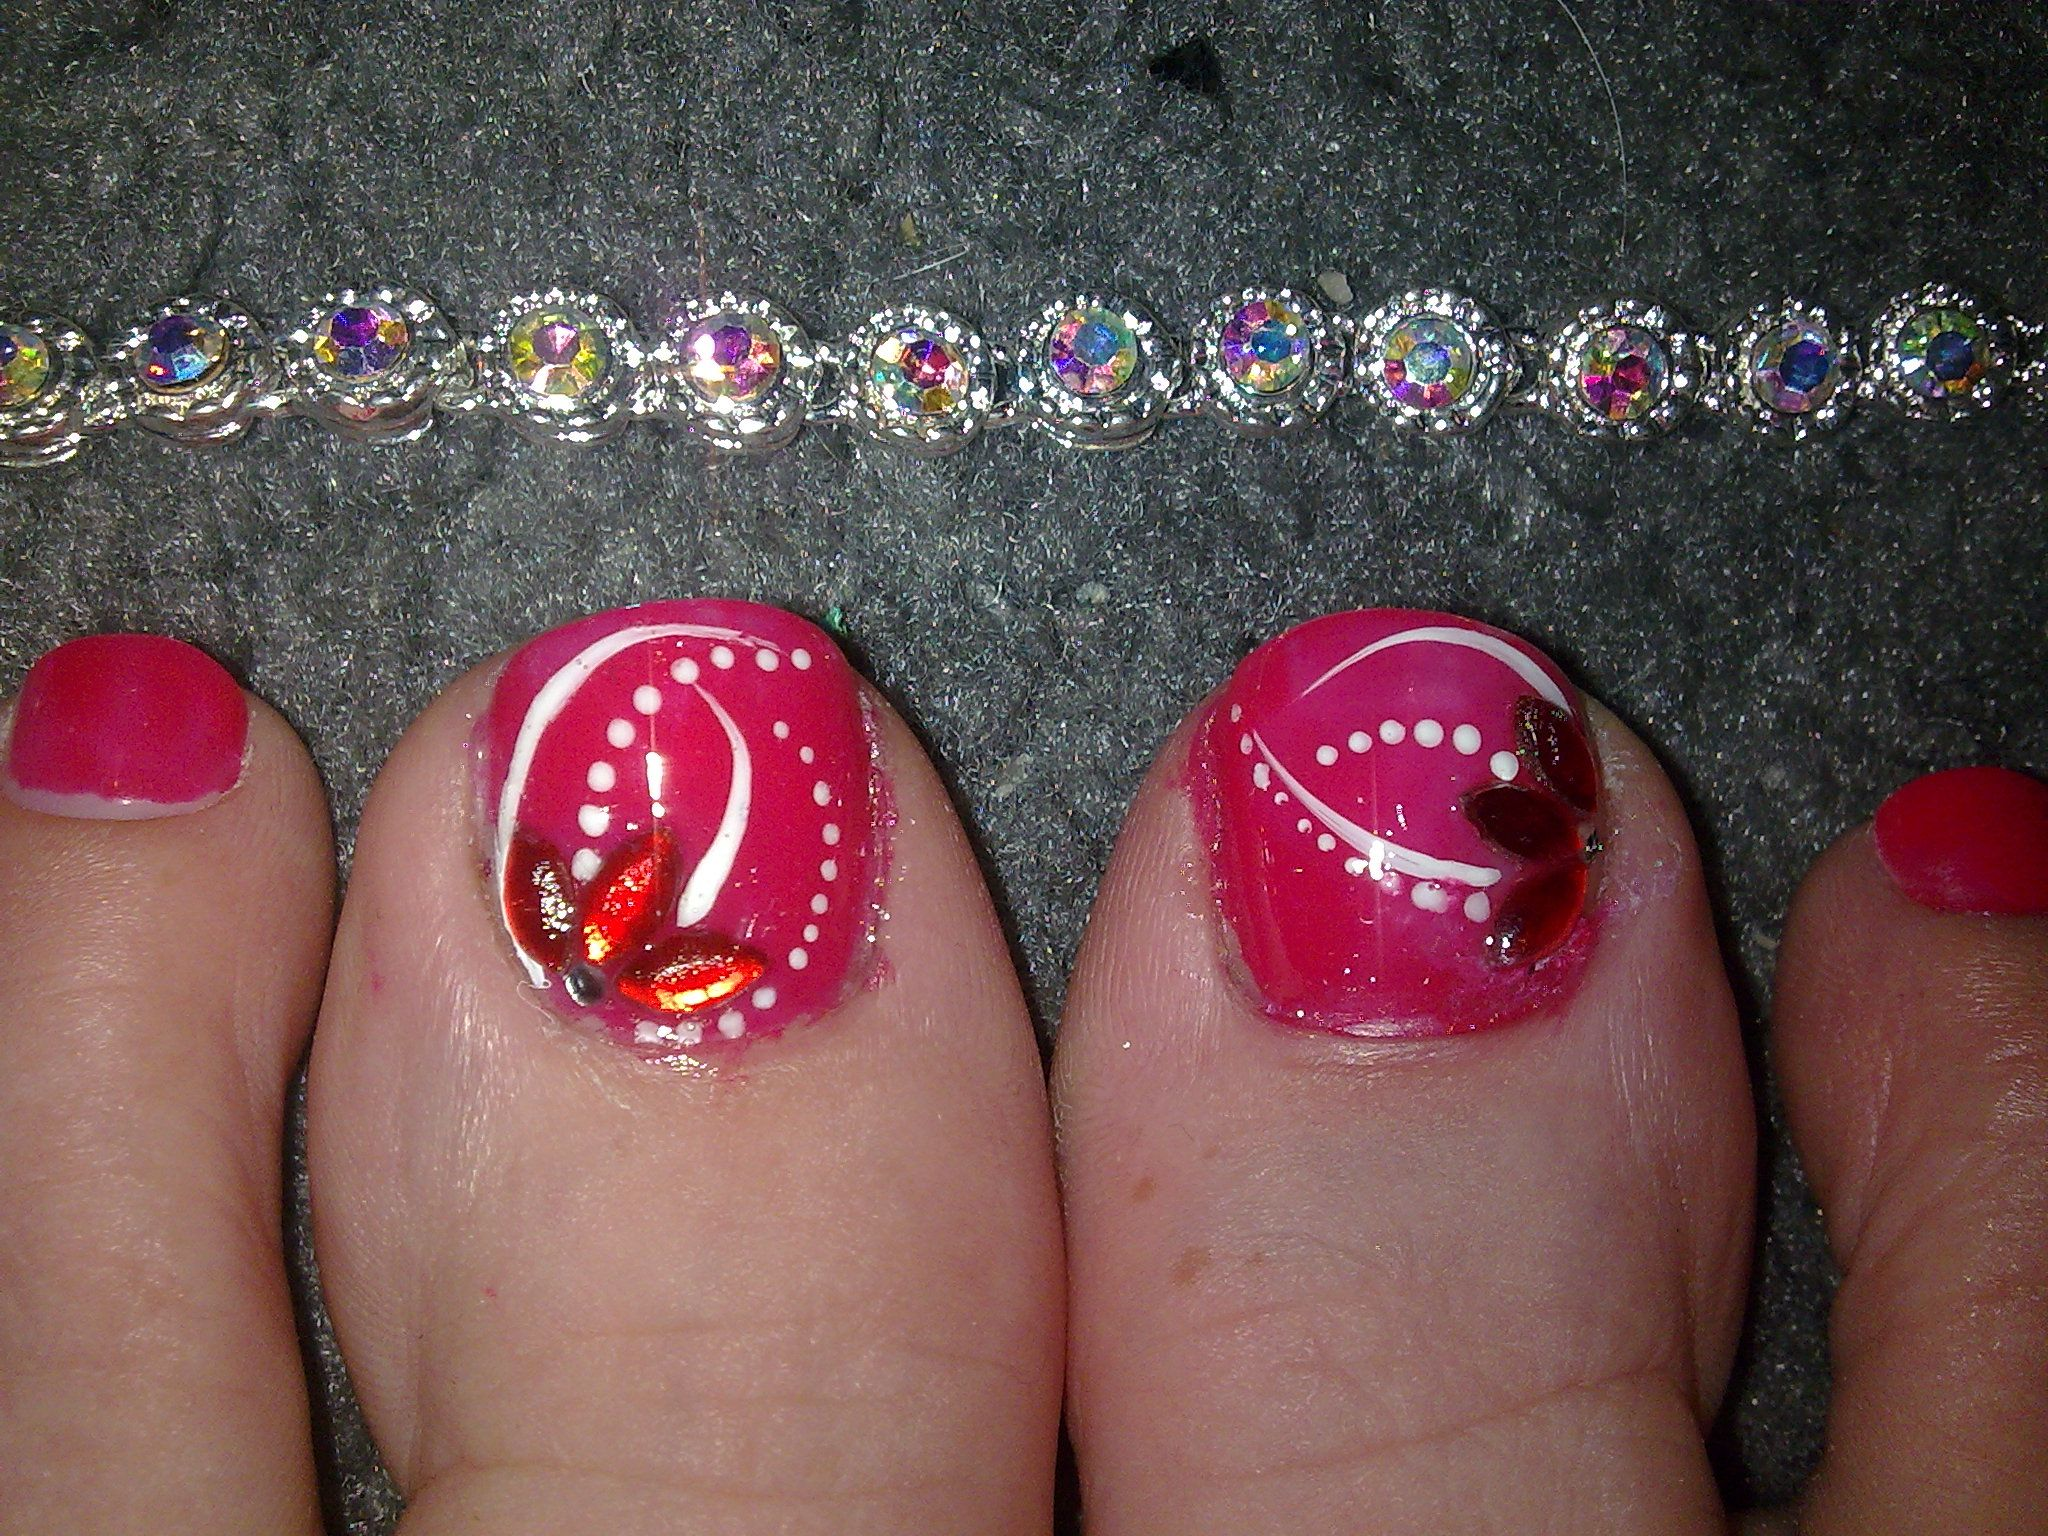 Basic Art Designs : Floral nail art designs toes with flower gem and white